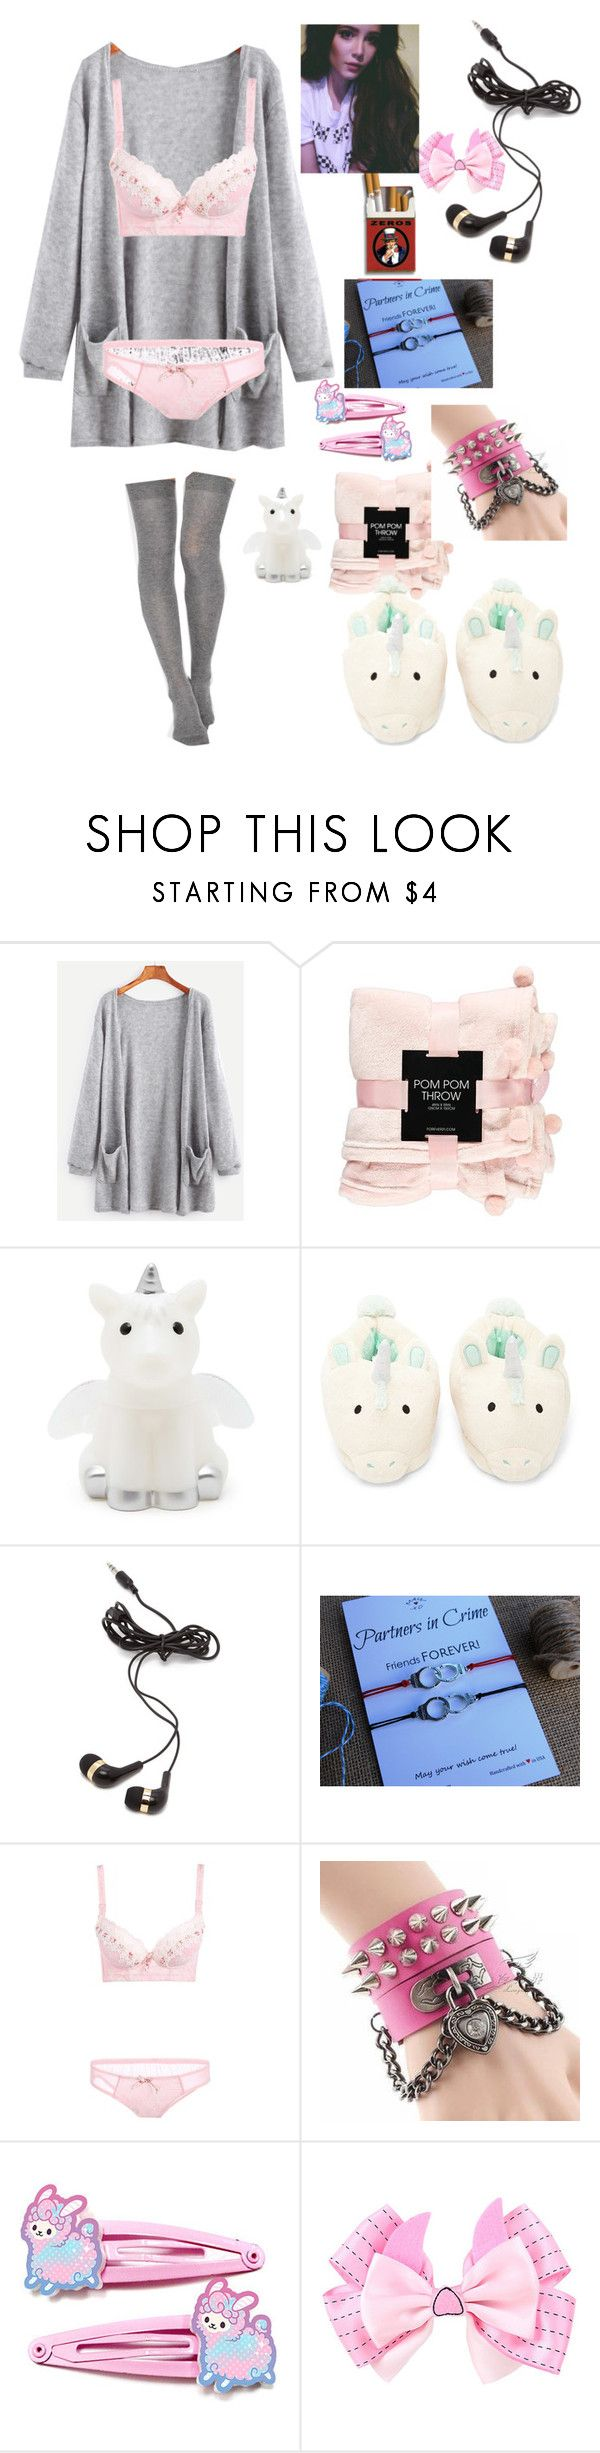 """""""#Daddy"""" by serial-killer-girl13 ❤ liked on Polyvore featuring beauty, Forever 21, Trend Cool, Disney, Ultimate and ASOS"""